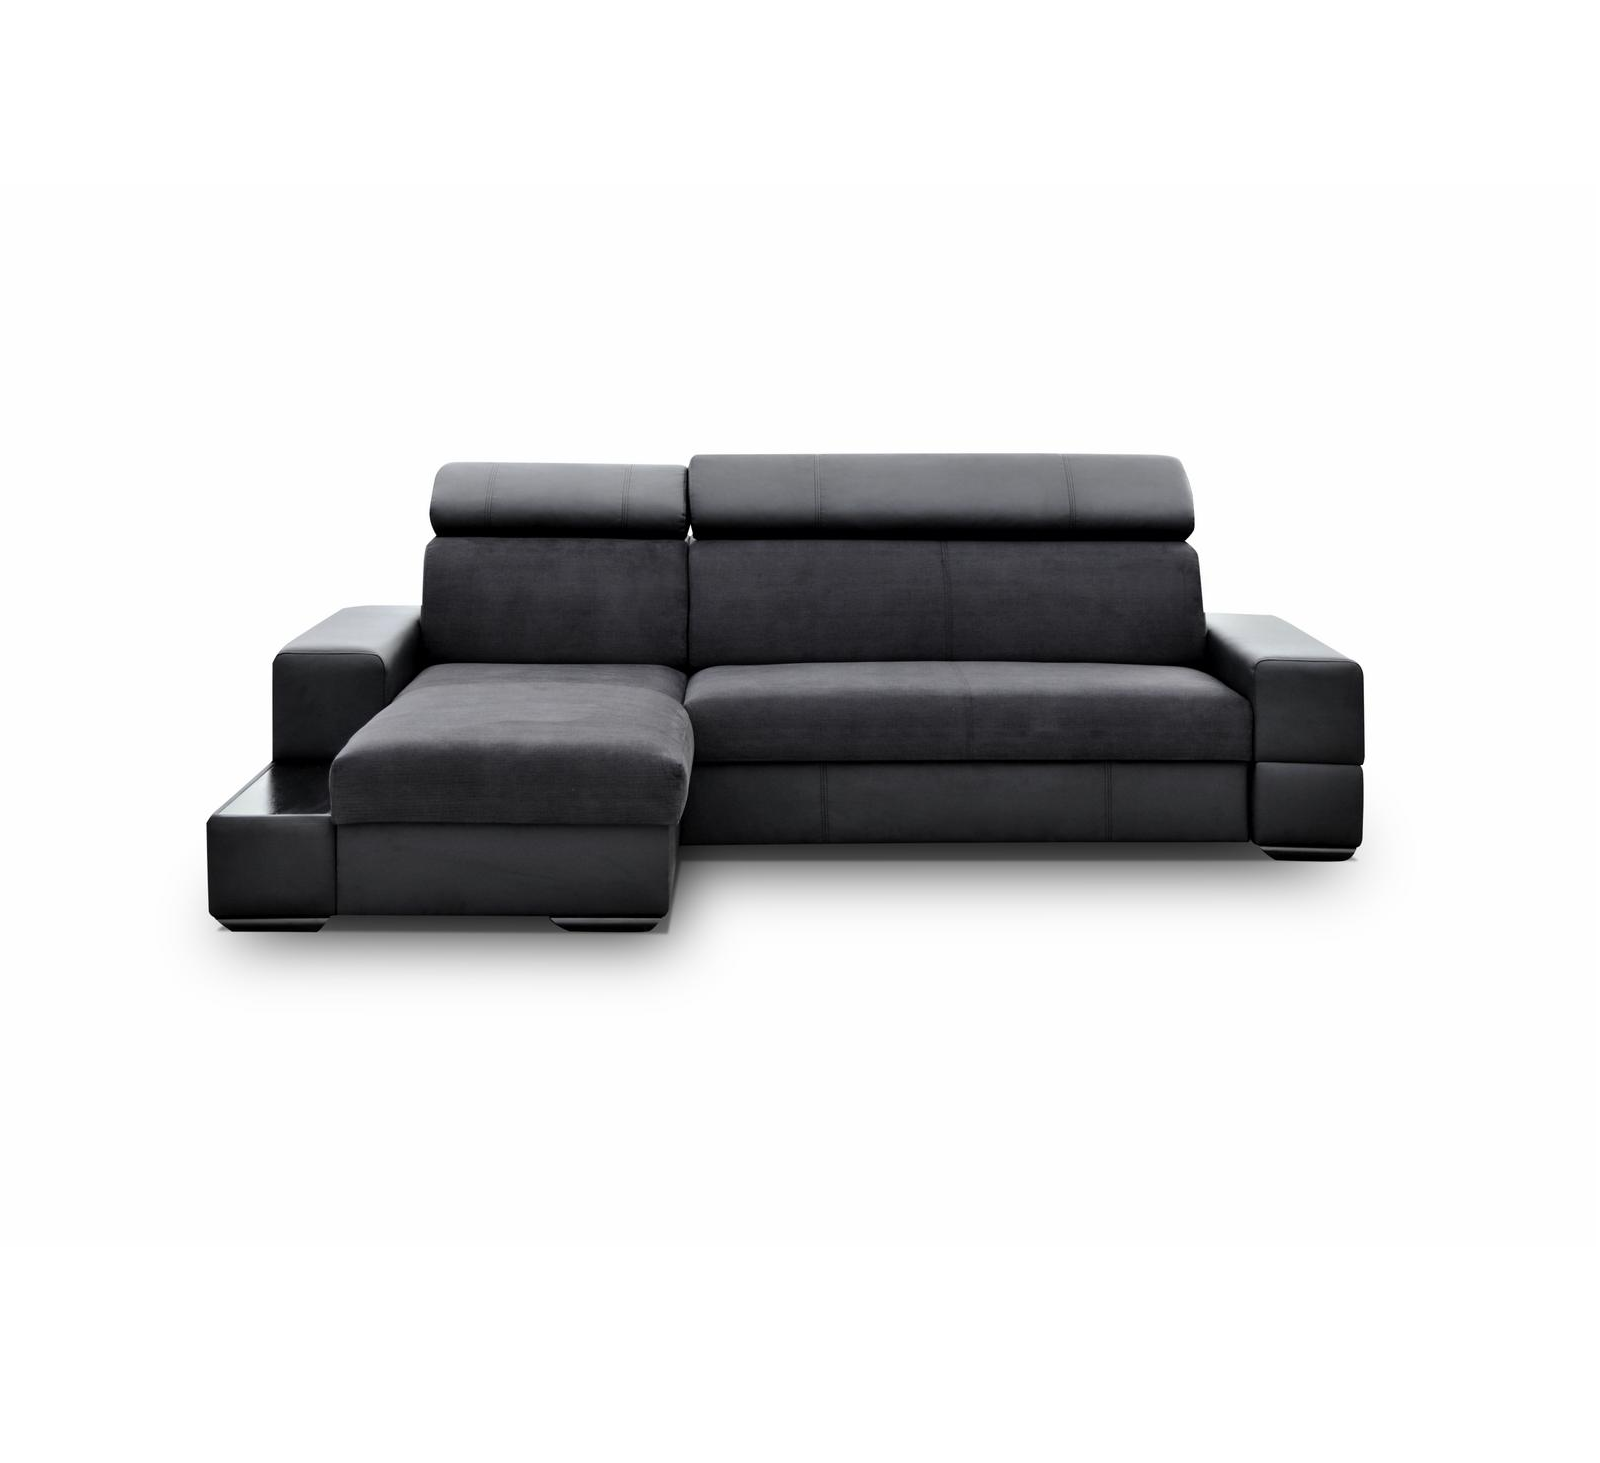 ecksofa capri schwarz m bel muller braun. Black Bedroom Furniture Sets. Home Design Ideas